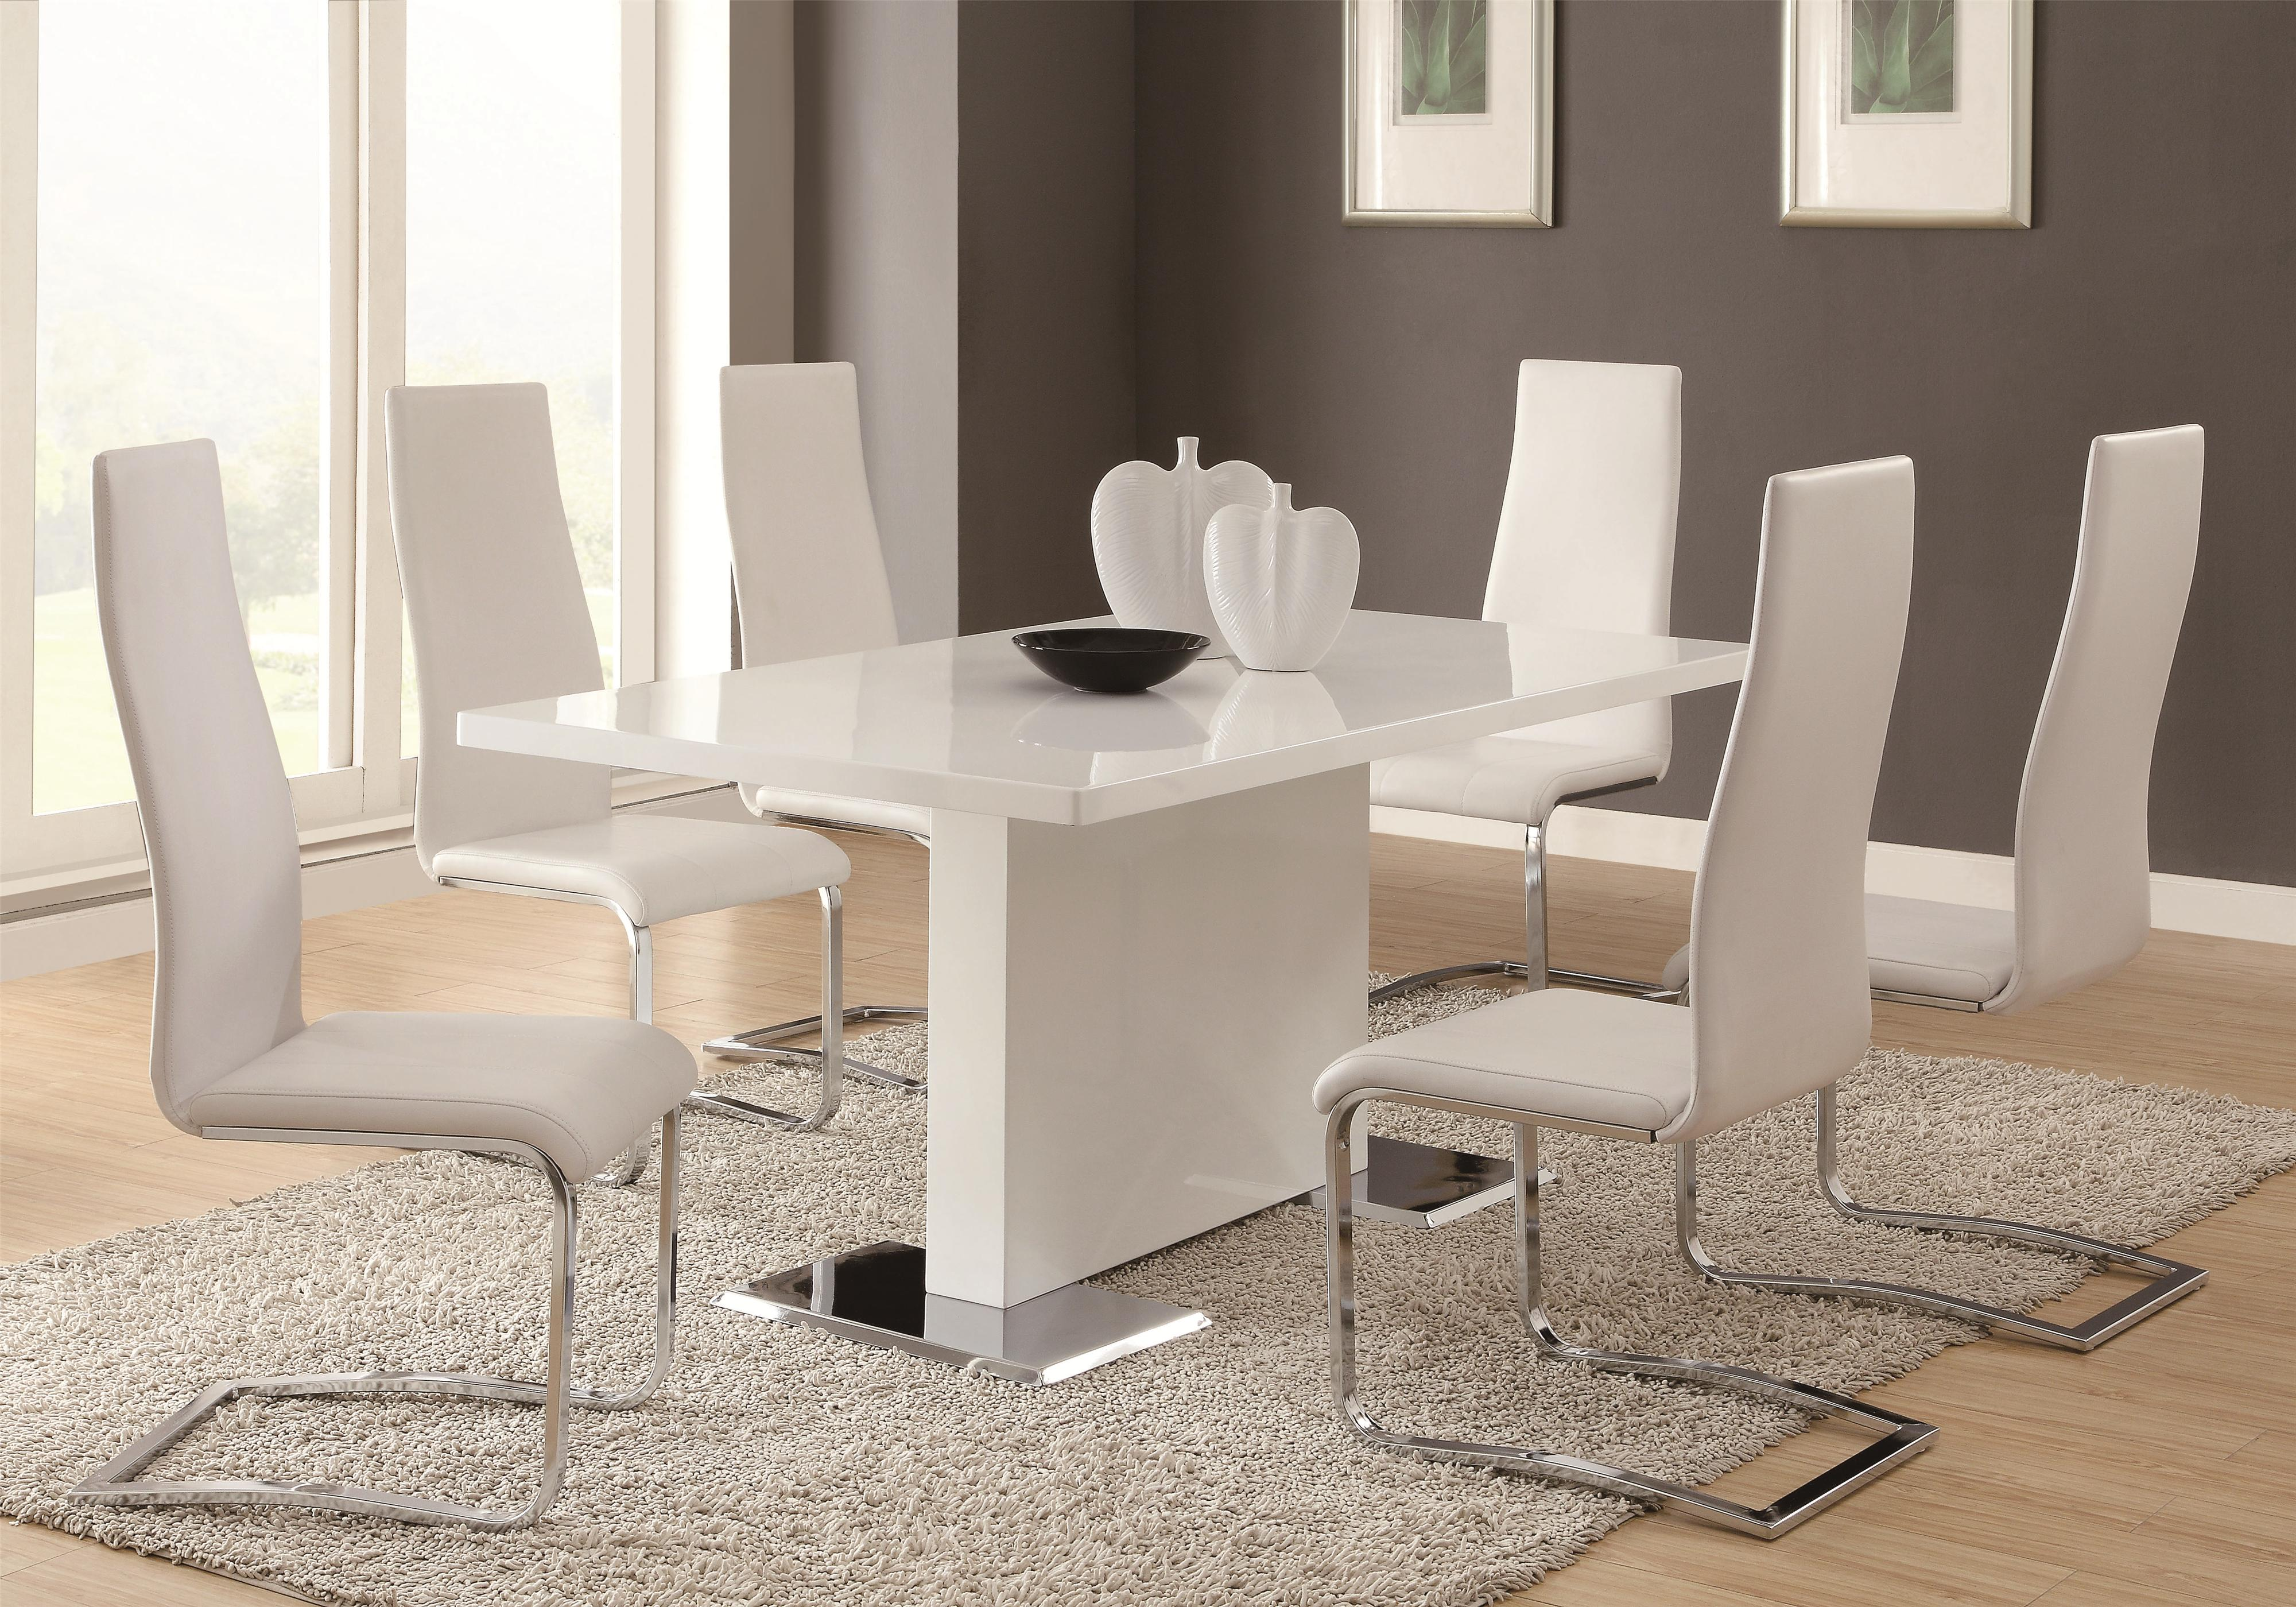 Black Dining Room Table And Chairs Modern Dining 7 Piece White Table White Upholstered Chairs Set By Coaster At Value City Furniture